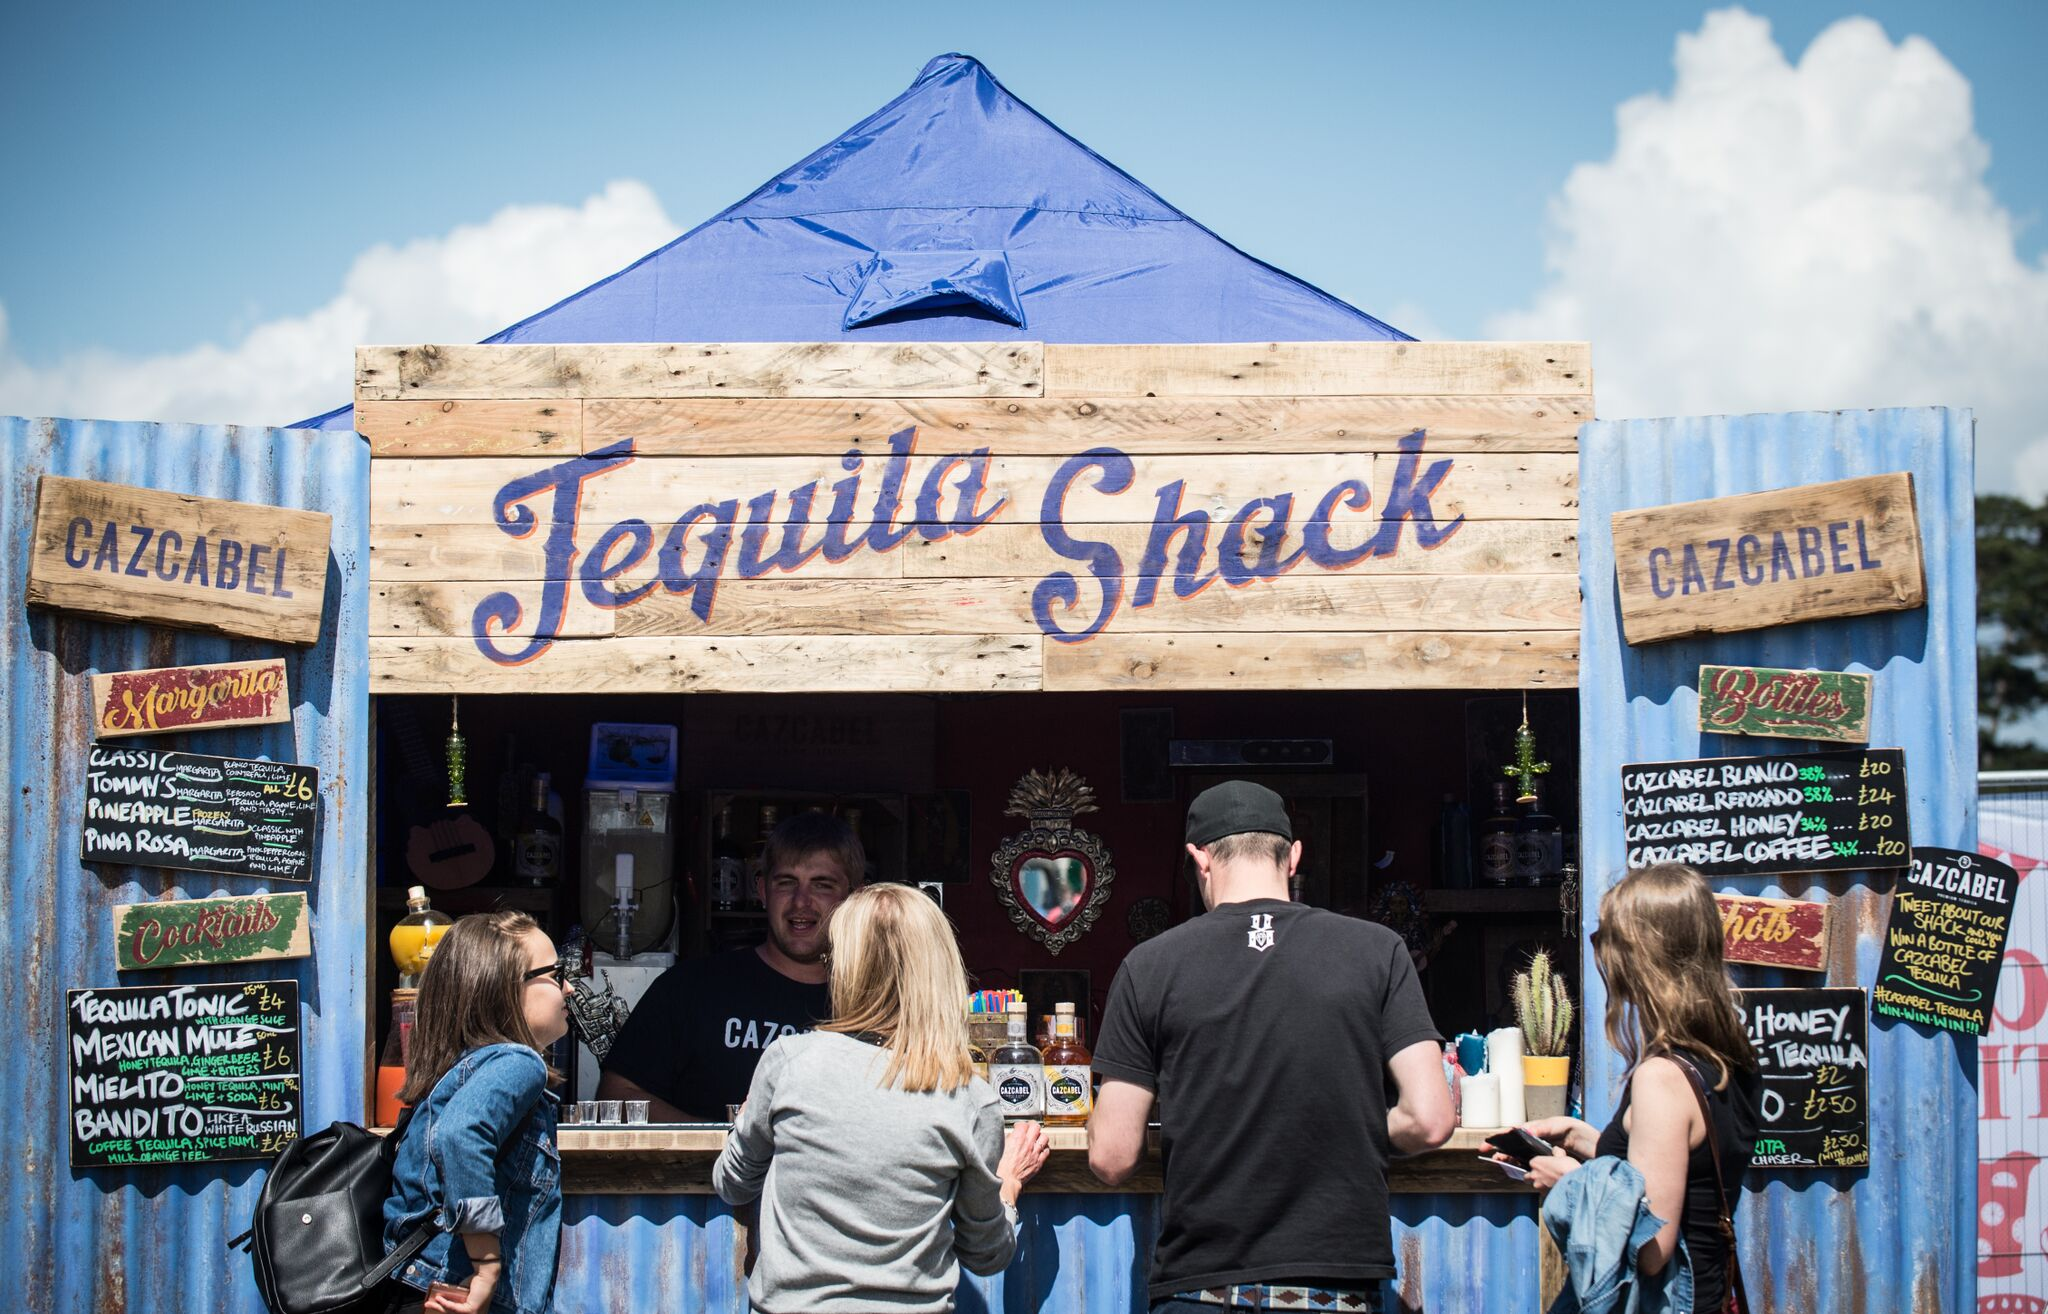 Tequila shack